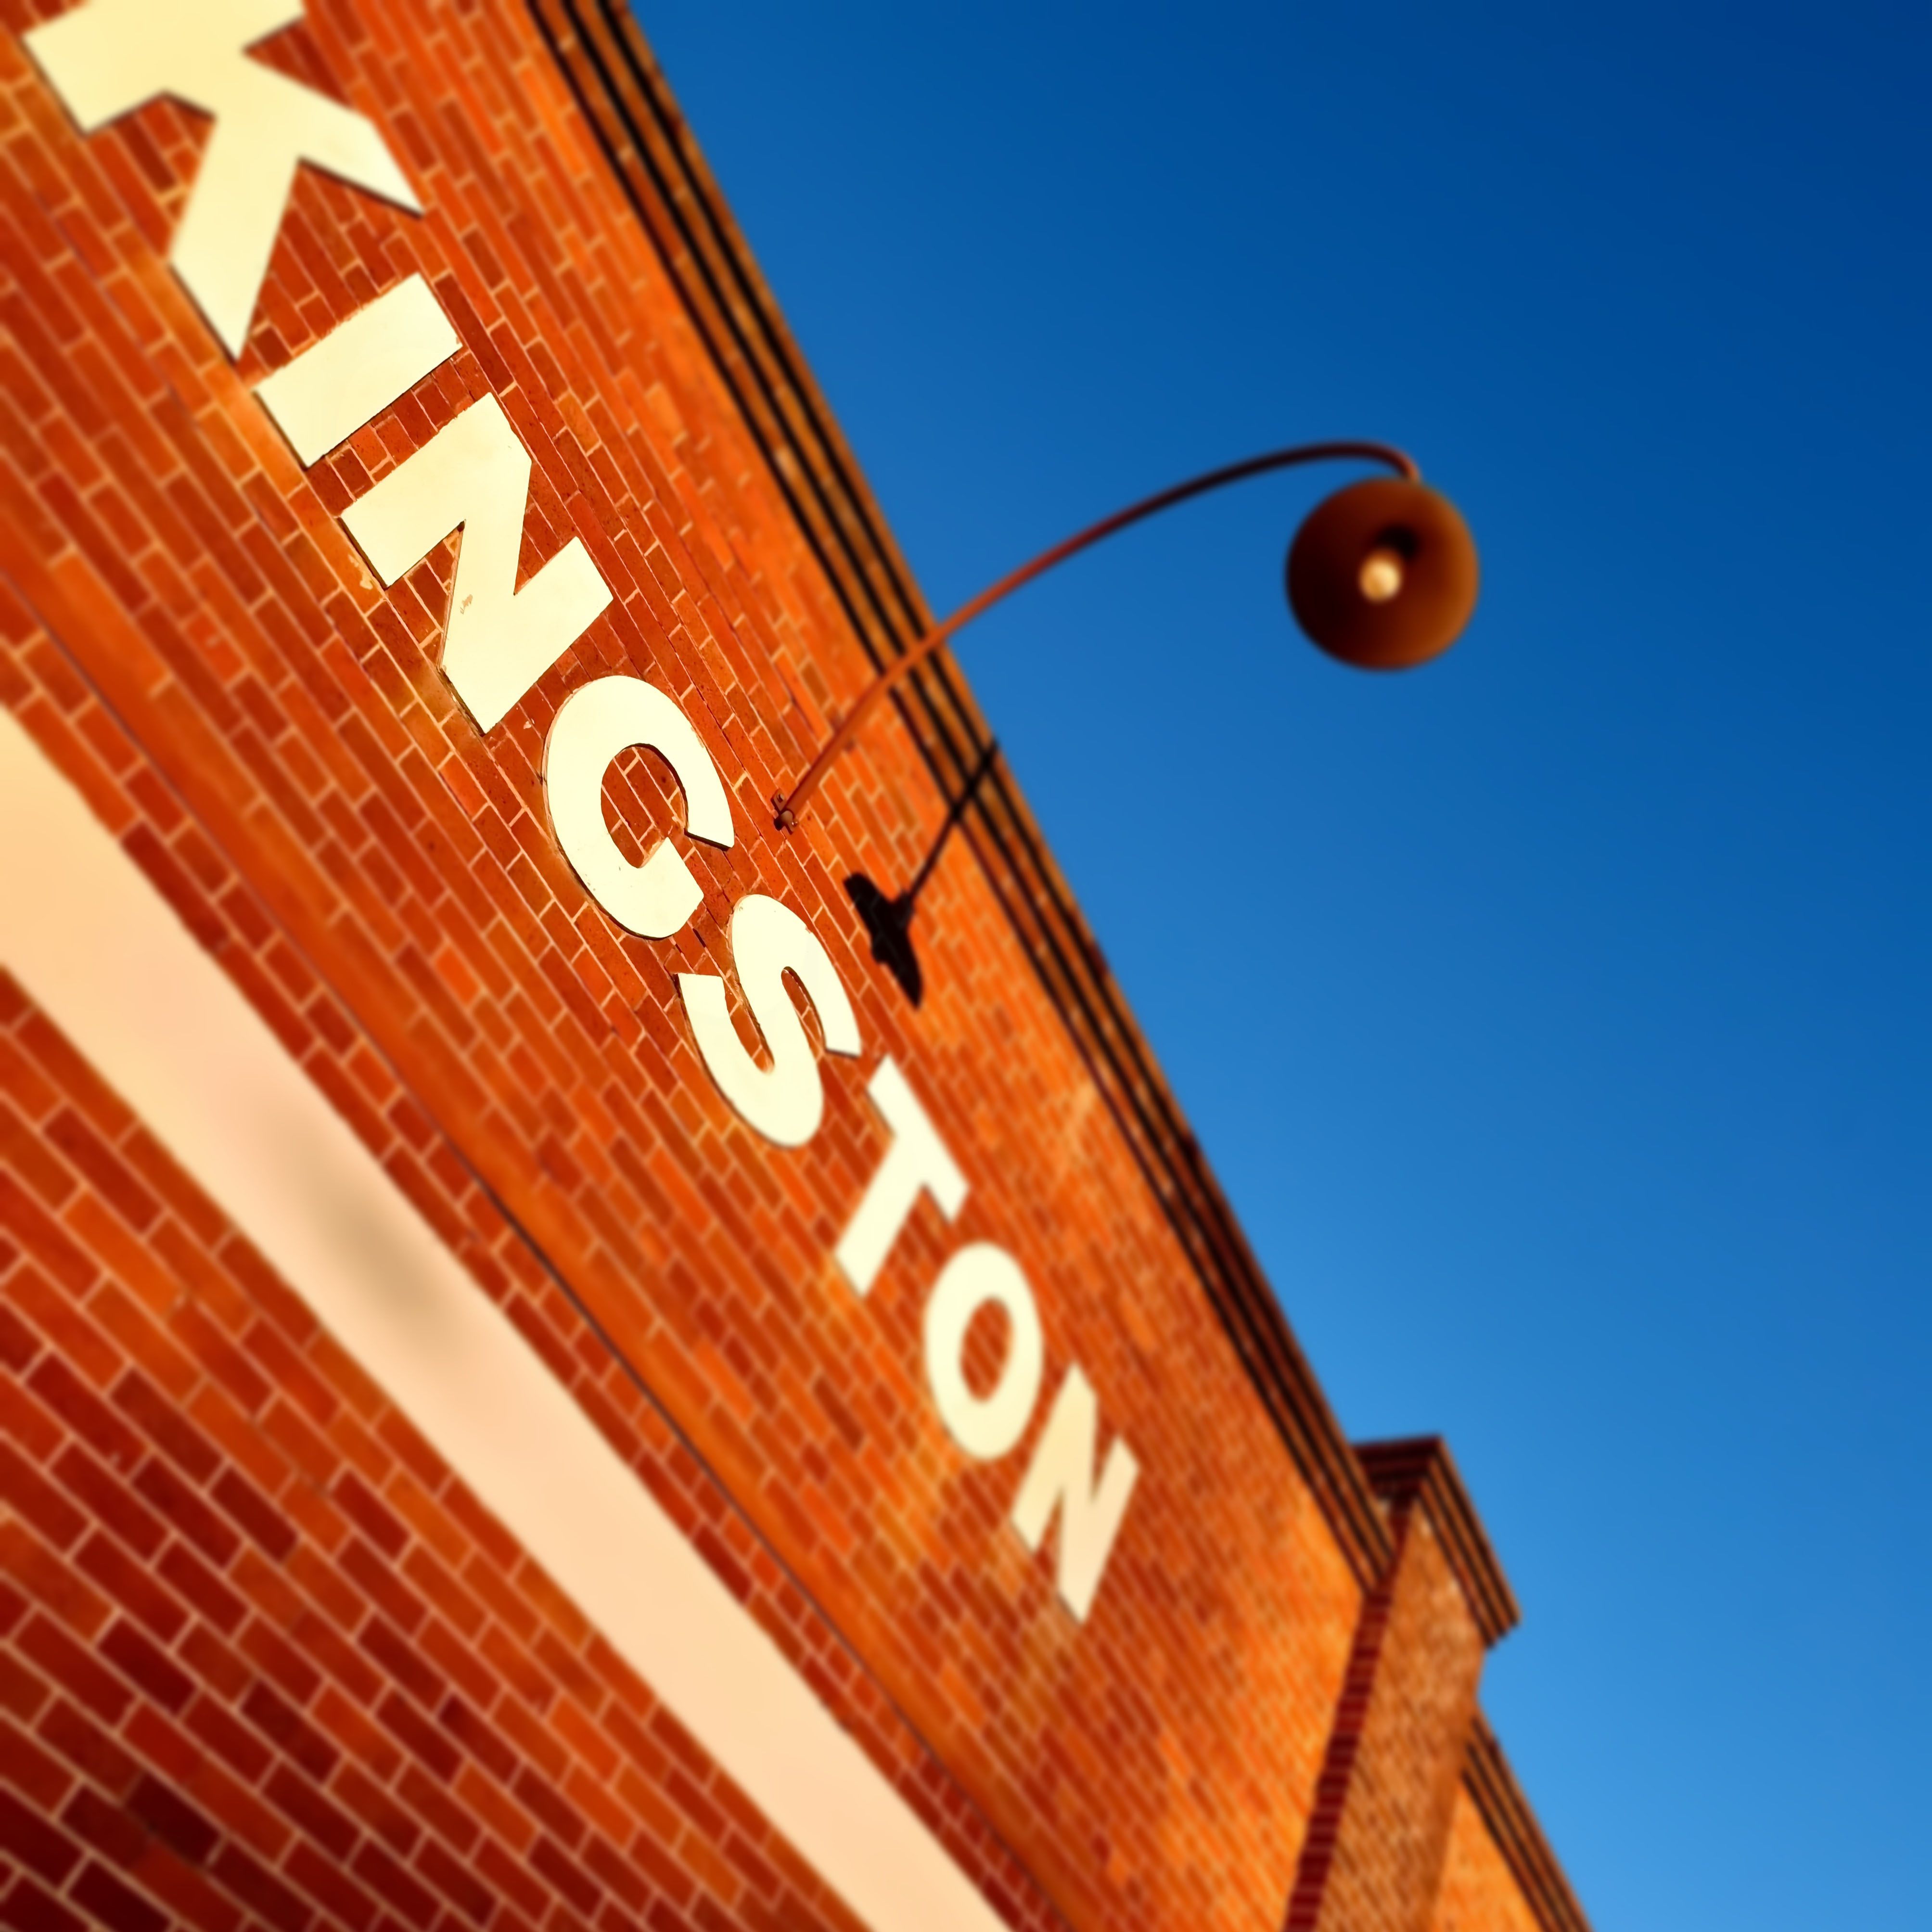 The name Kingston on a brick building